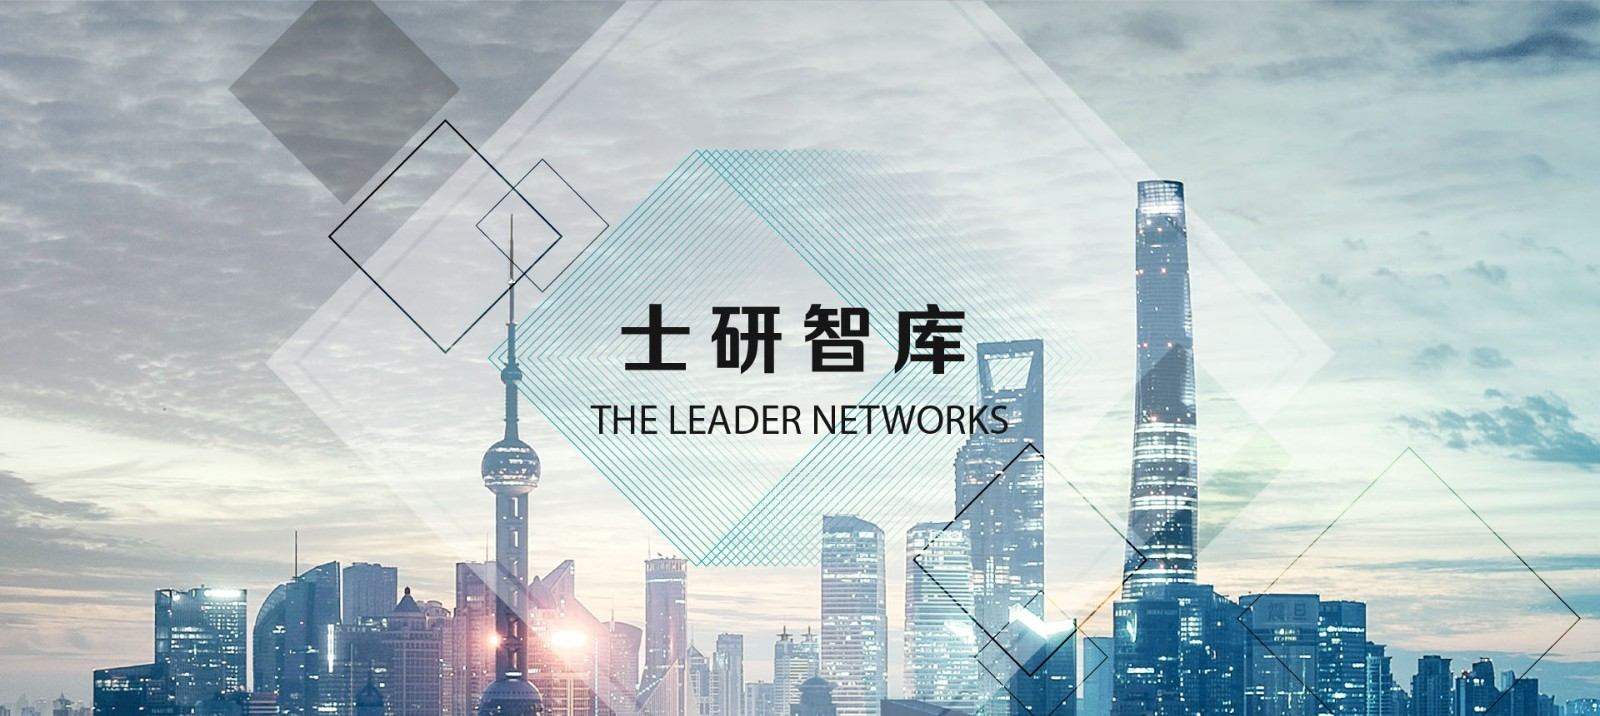 The Leader Networks